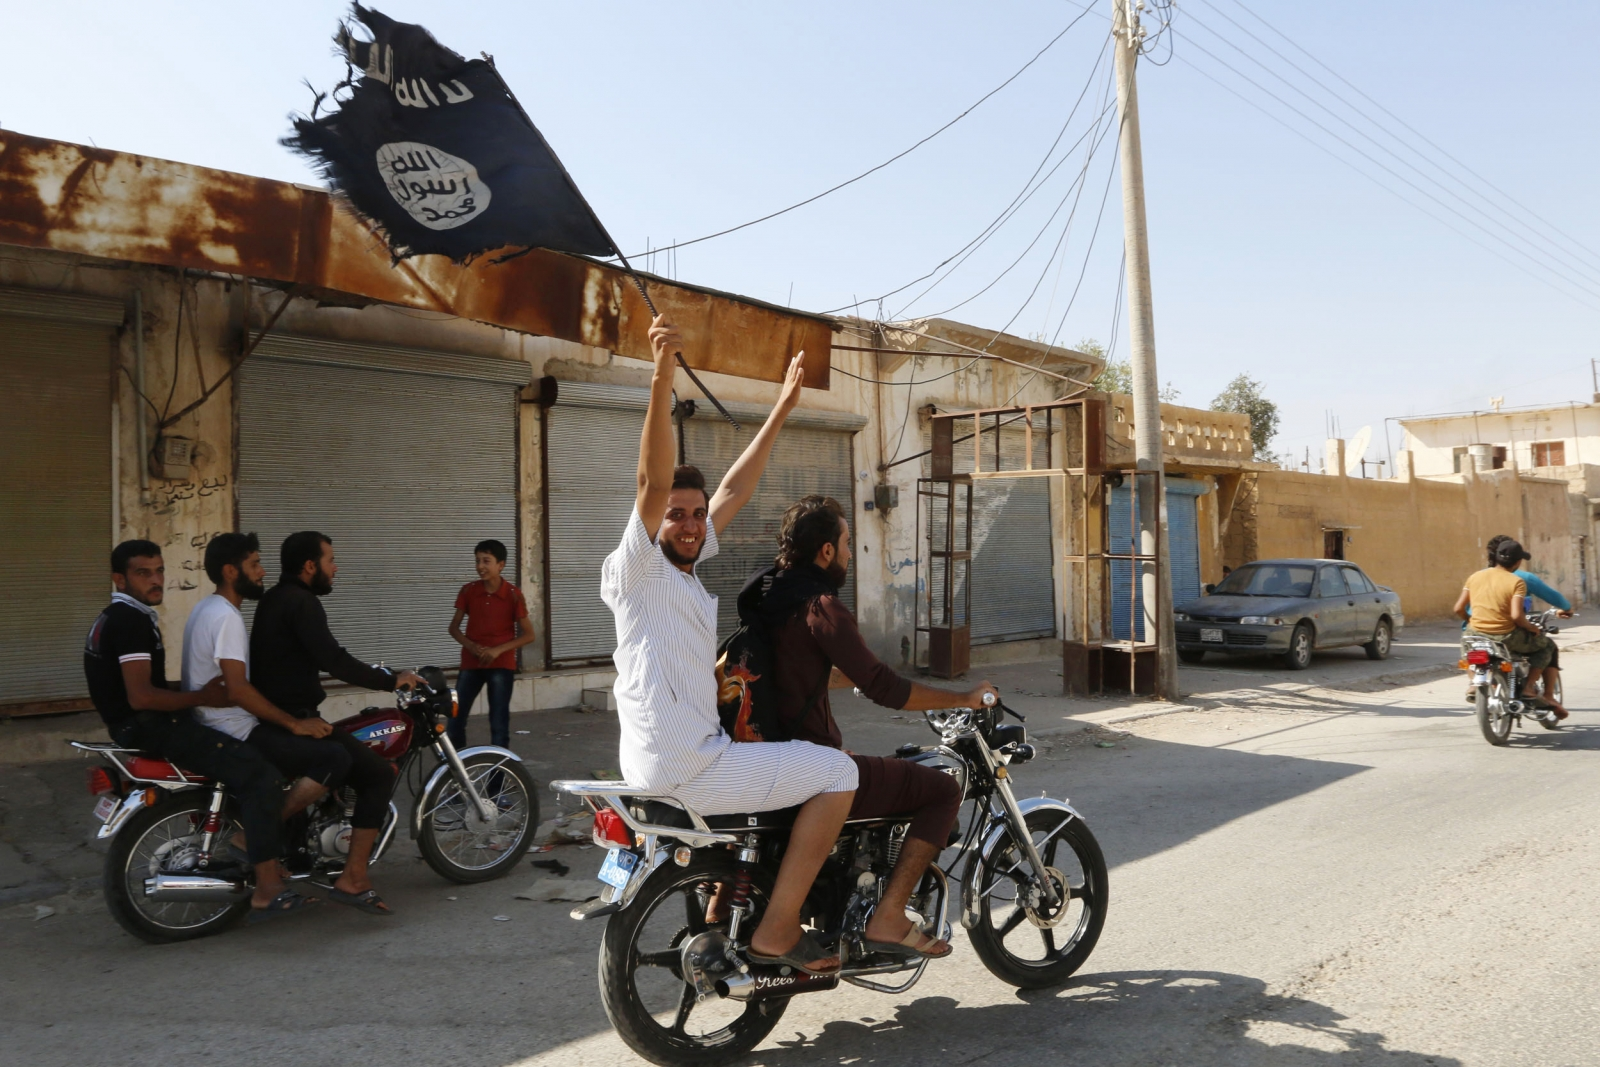 A resident of Tabqa city touring the streets on a motorcycle waves an Islamist flag in celebration after Islamic State militants took over Tabqa air base